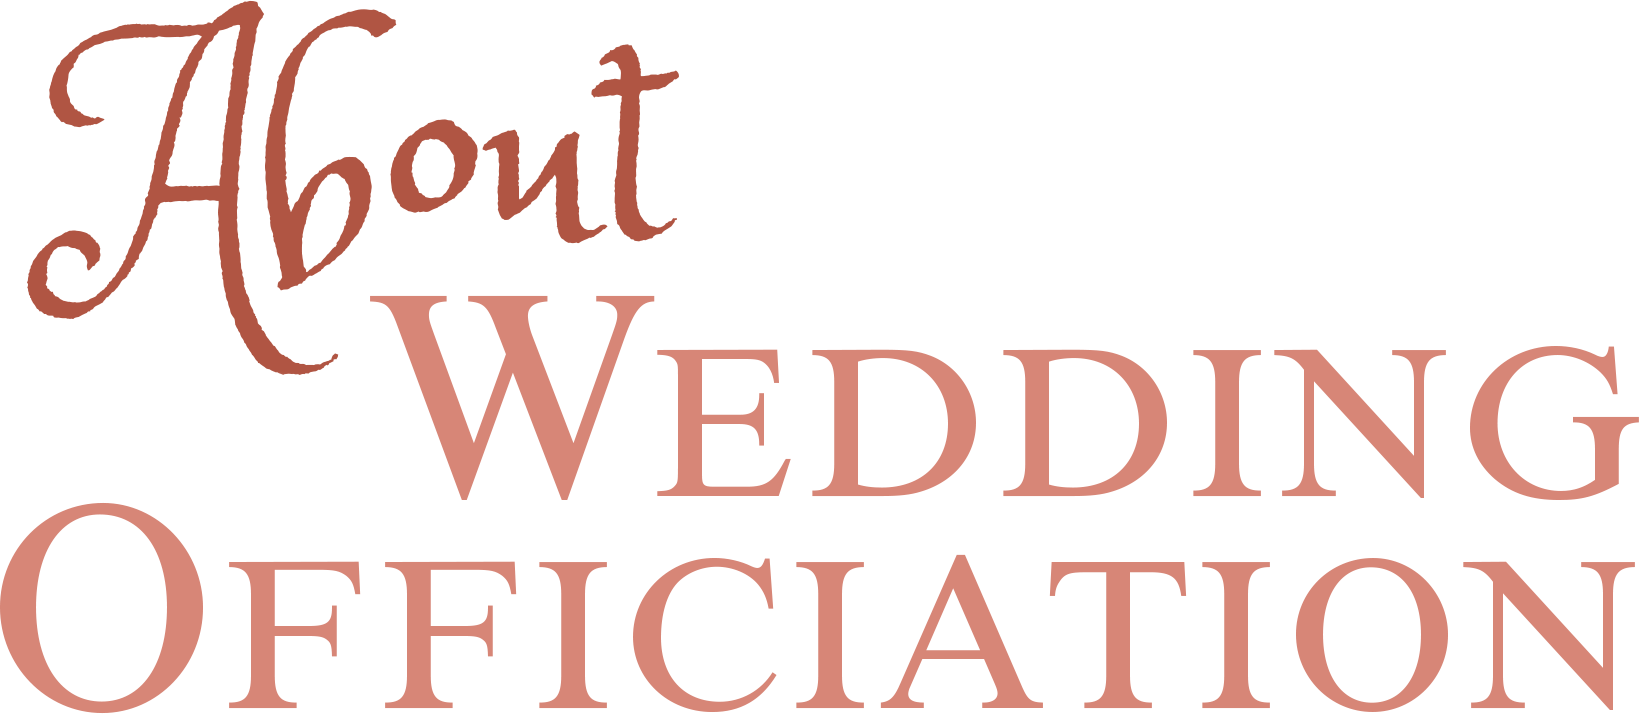 wedding-officiation